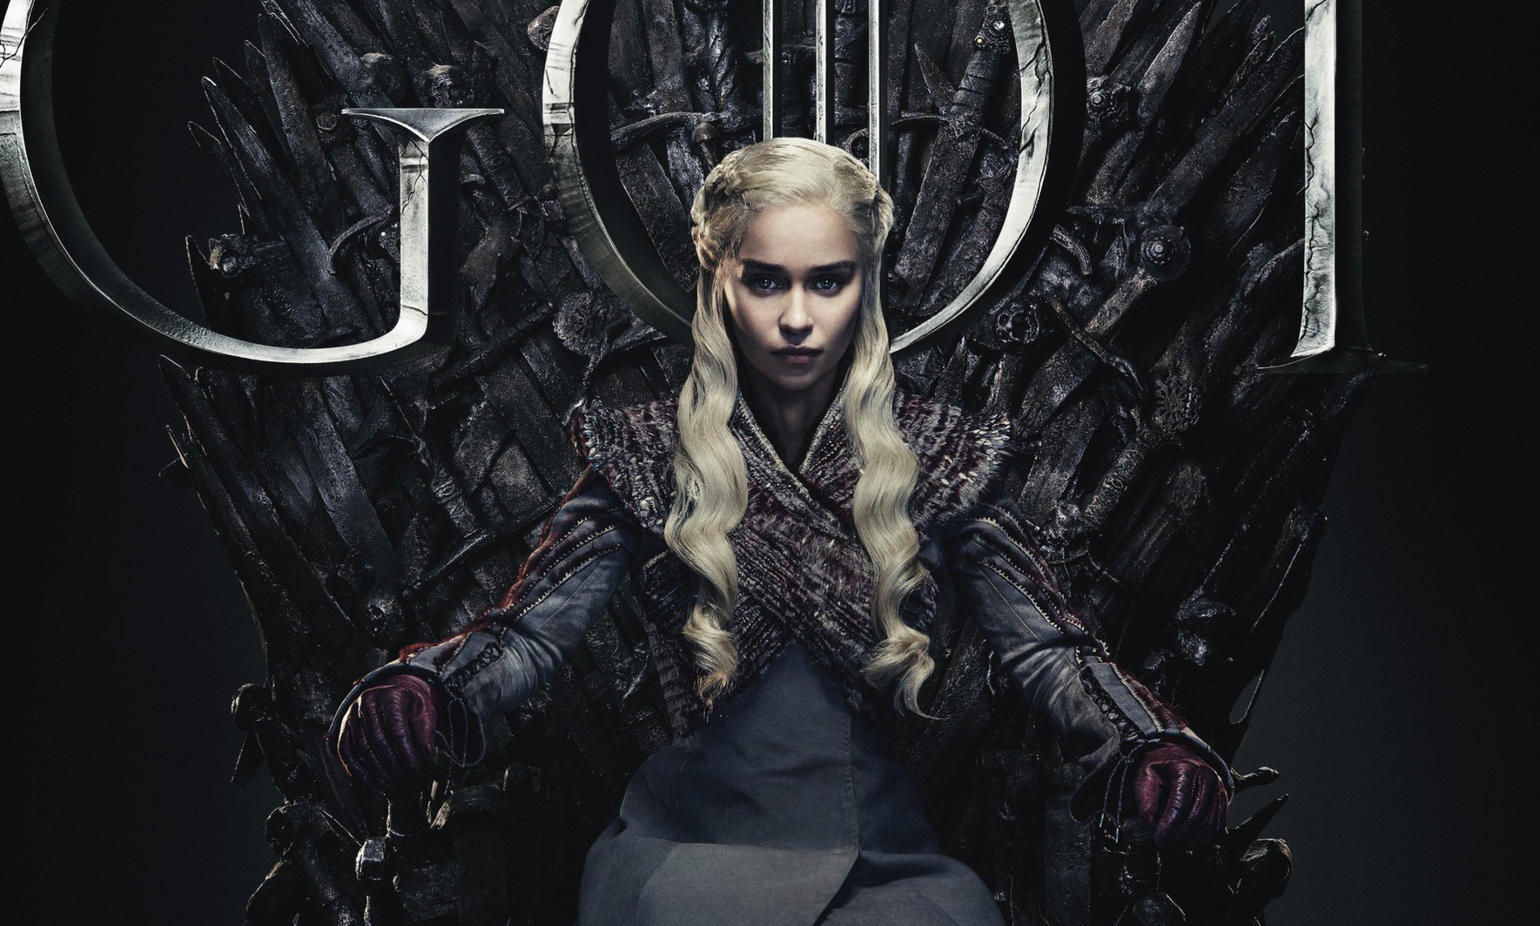 How to Watch Game of Thrones Season 8 in India, US, UK, Ireland